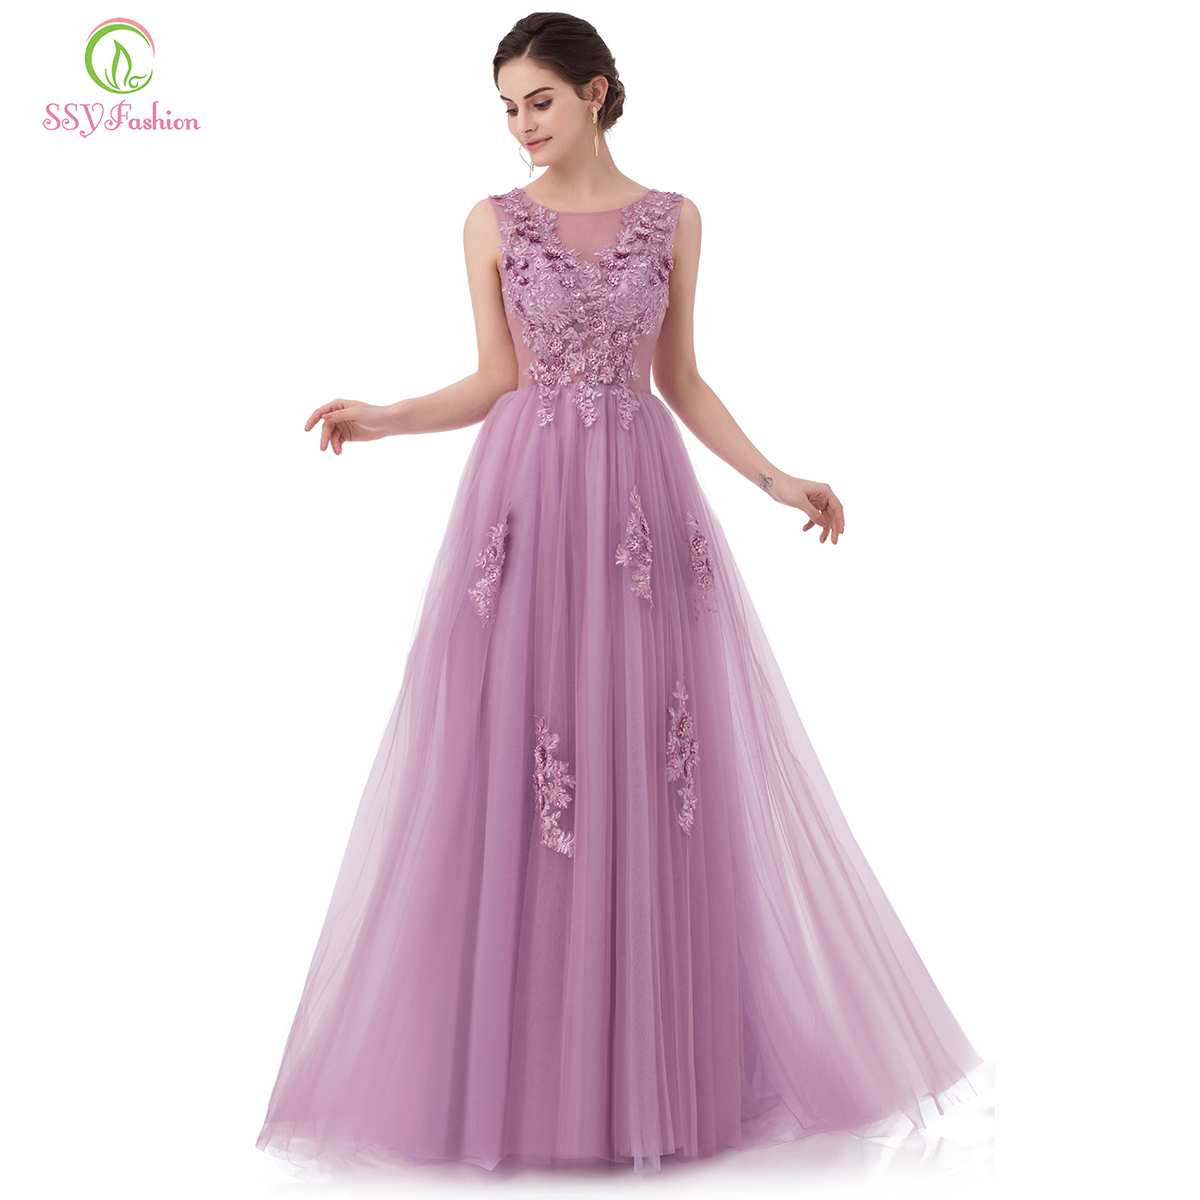 SSYFashion New Sweet Lace Evening Dress Purple Pink Appliques With Beading Sleeveless Floor-length Long Prom Party Gowns